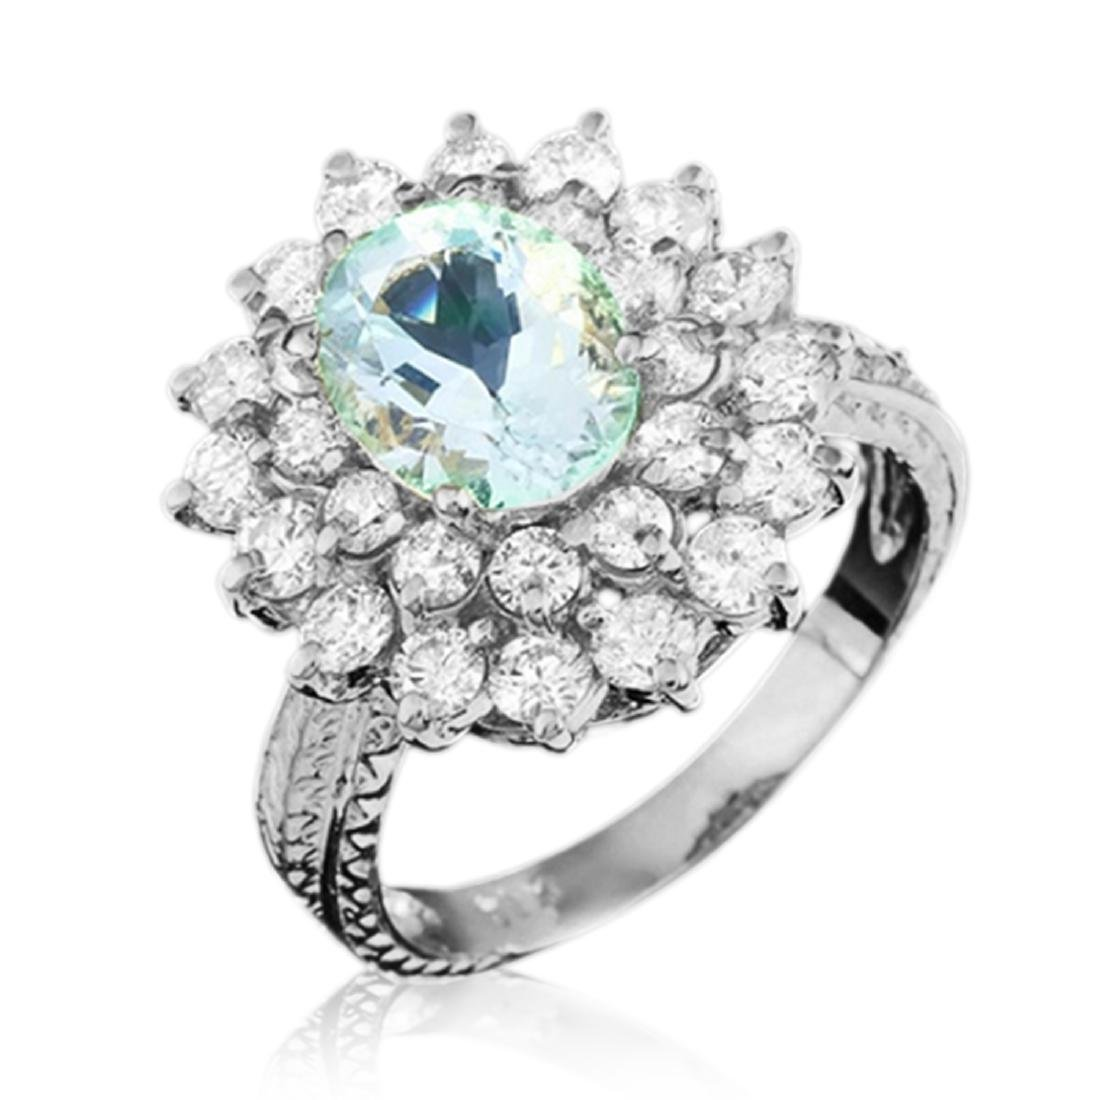 3.50 Carat Natural Aquamarine 18K Solid White Gold